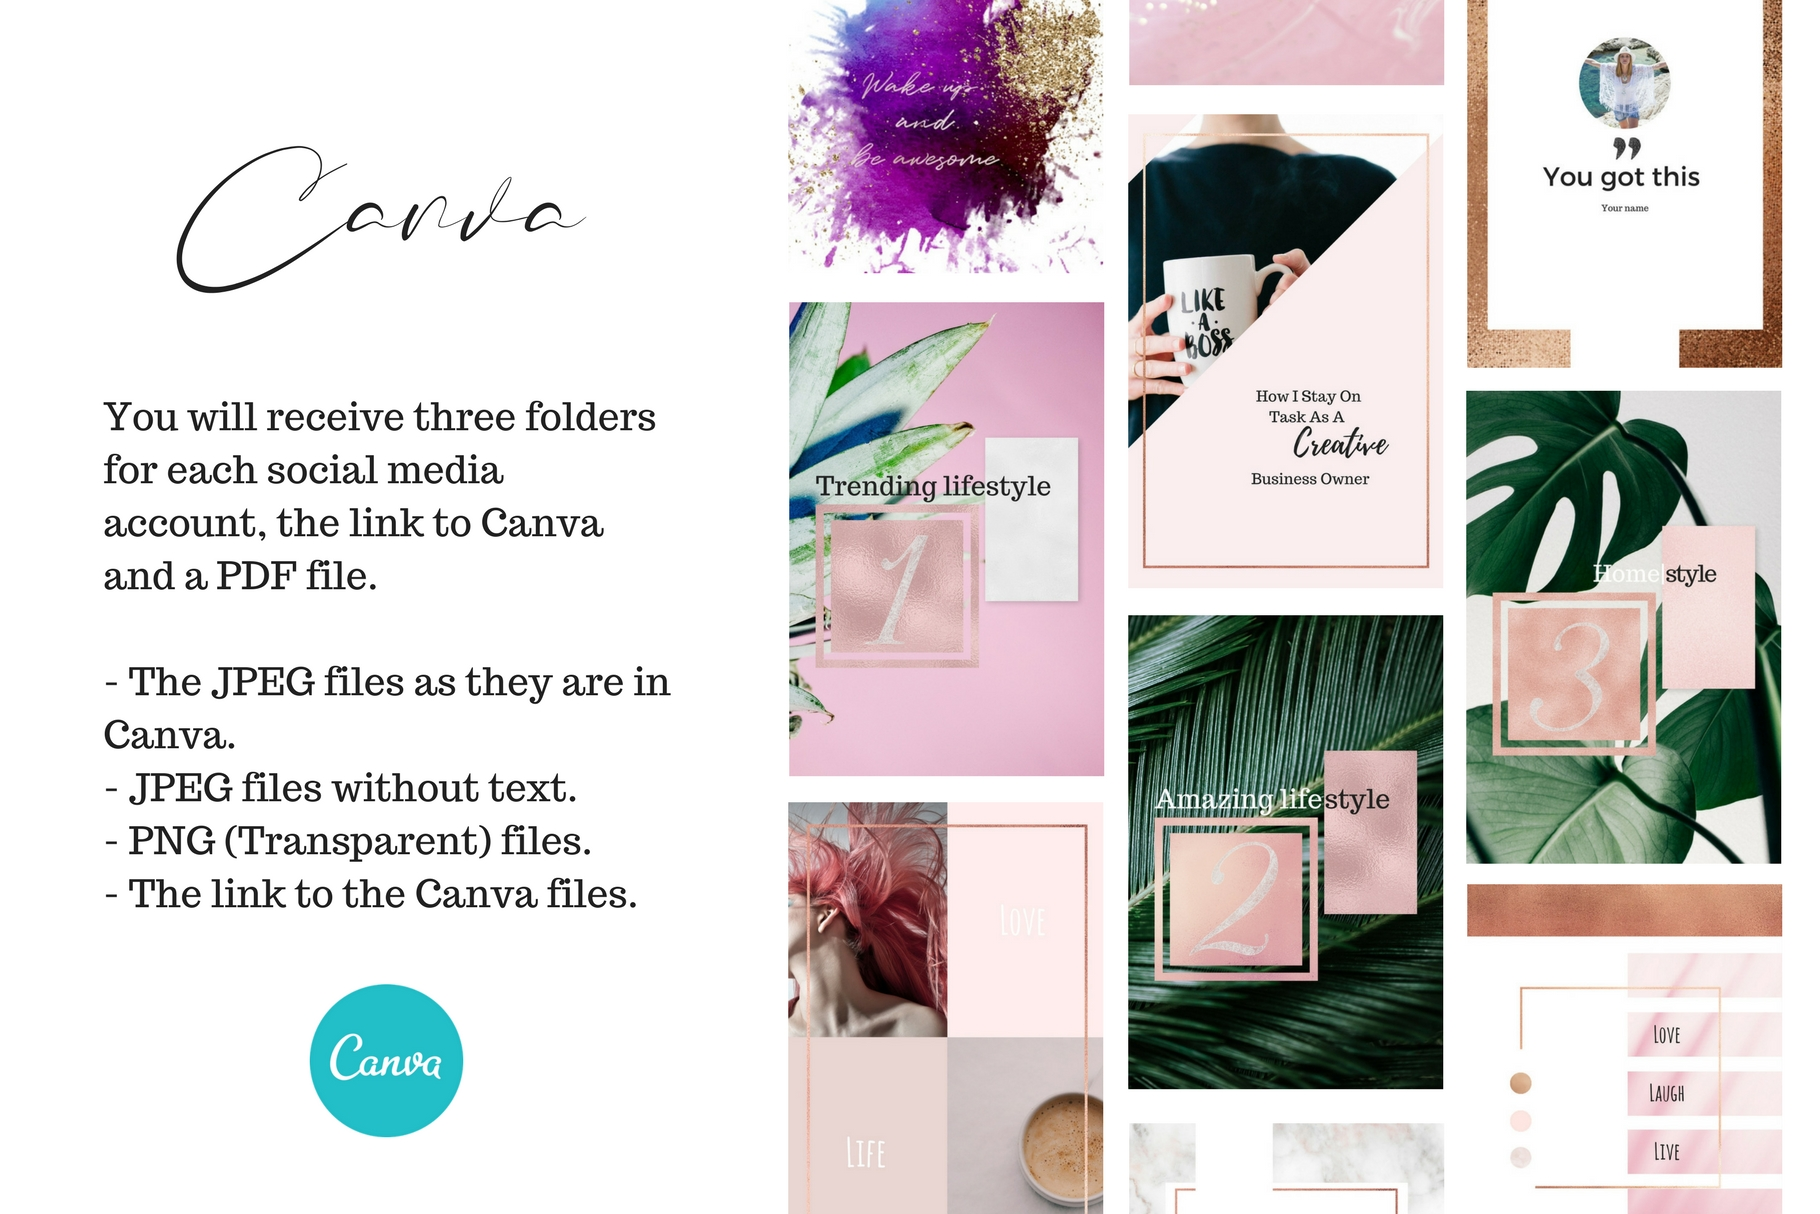 Canva for you - Social media example image 2